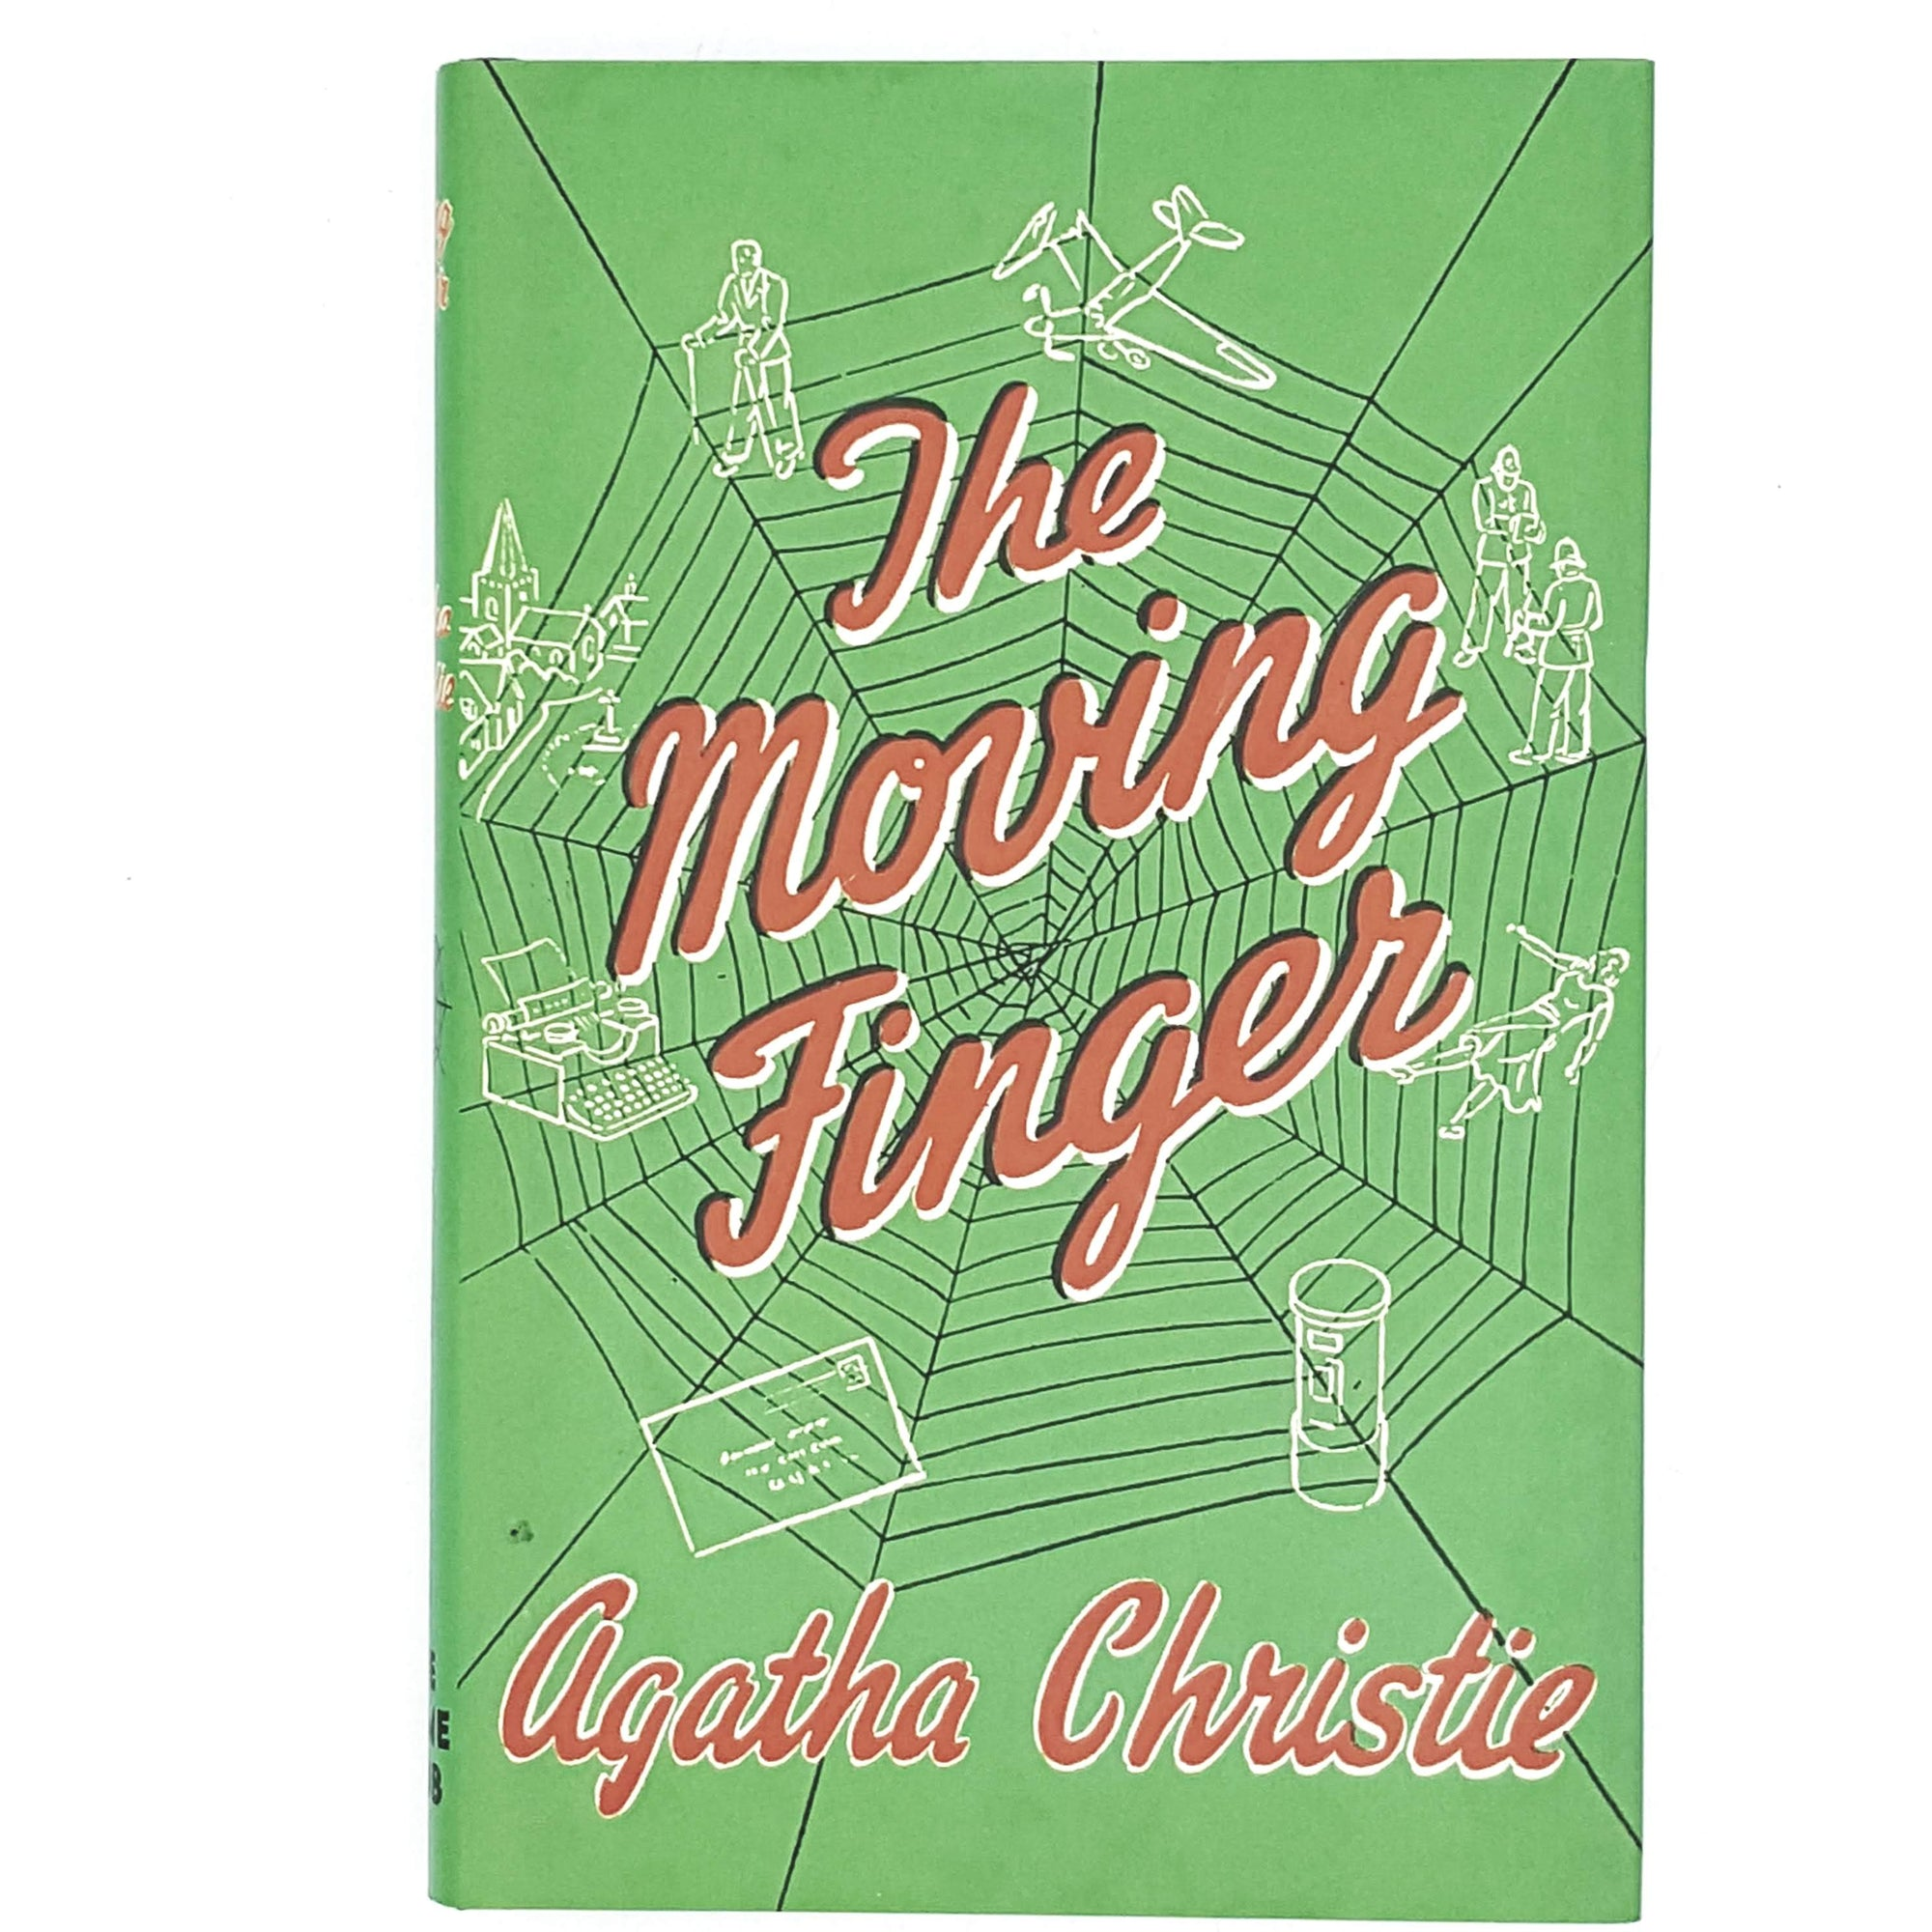 Agatha Christie's The Moving Fingers